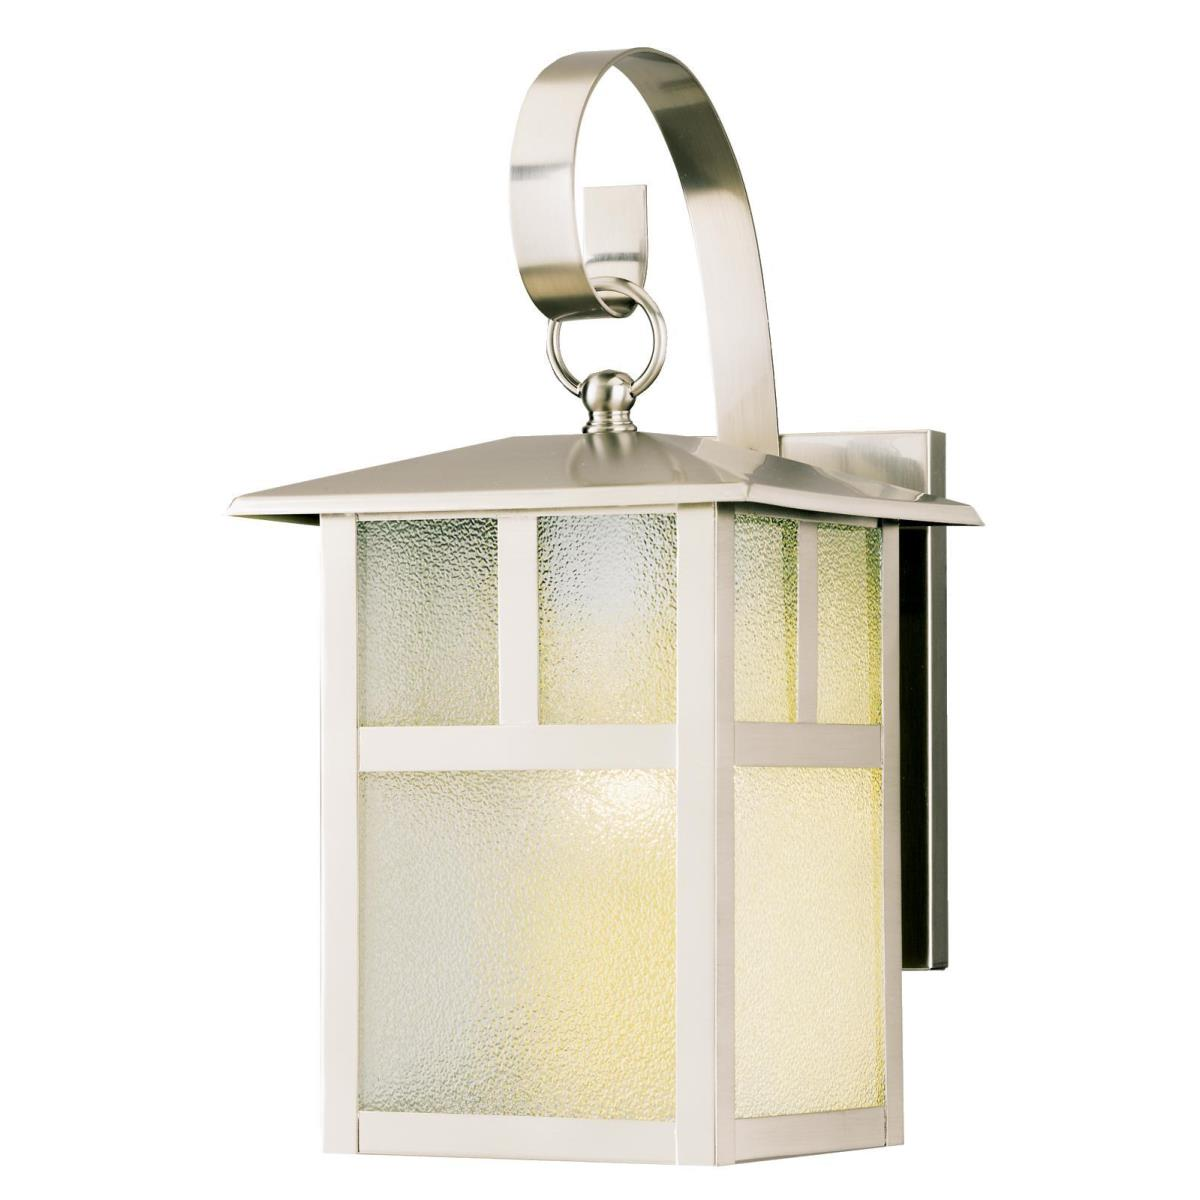 1 Light Wall Fixture Brushed Nickel Finish with Clear Textured Glass